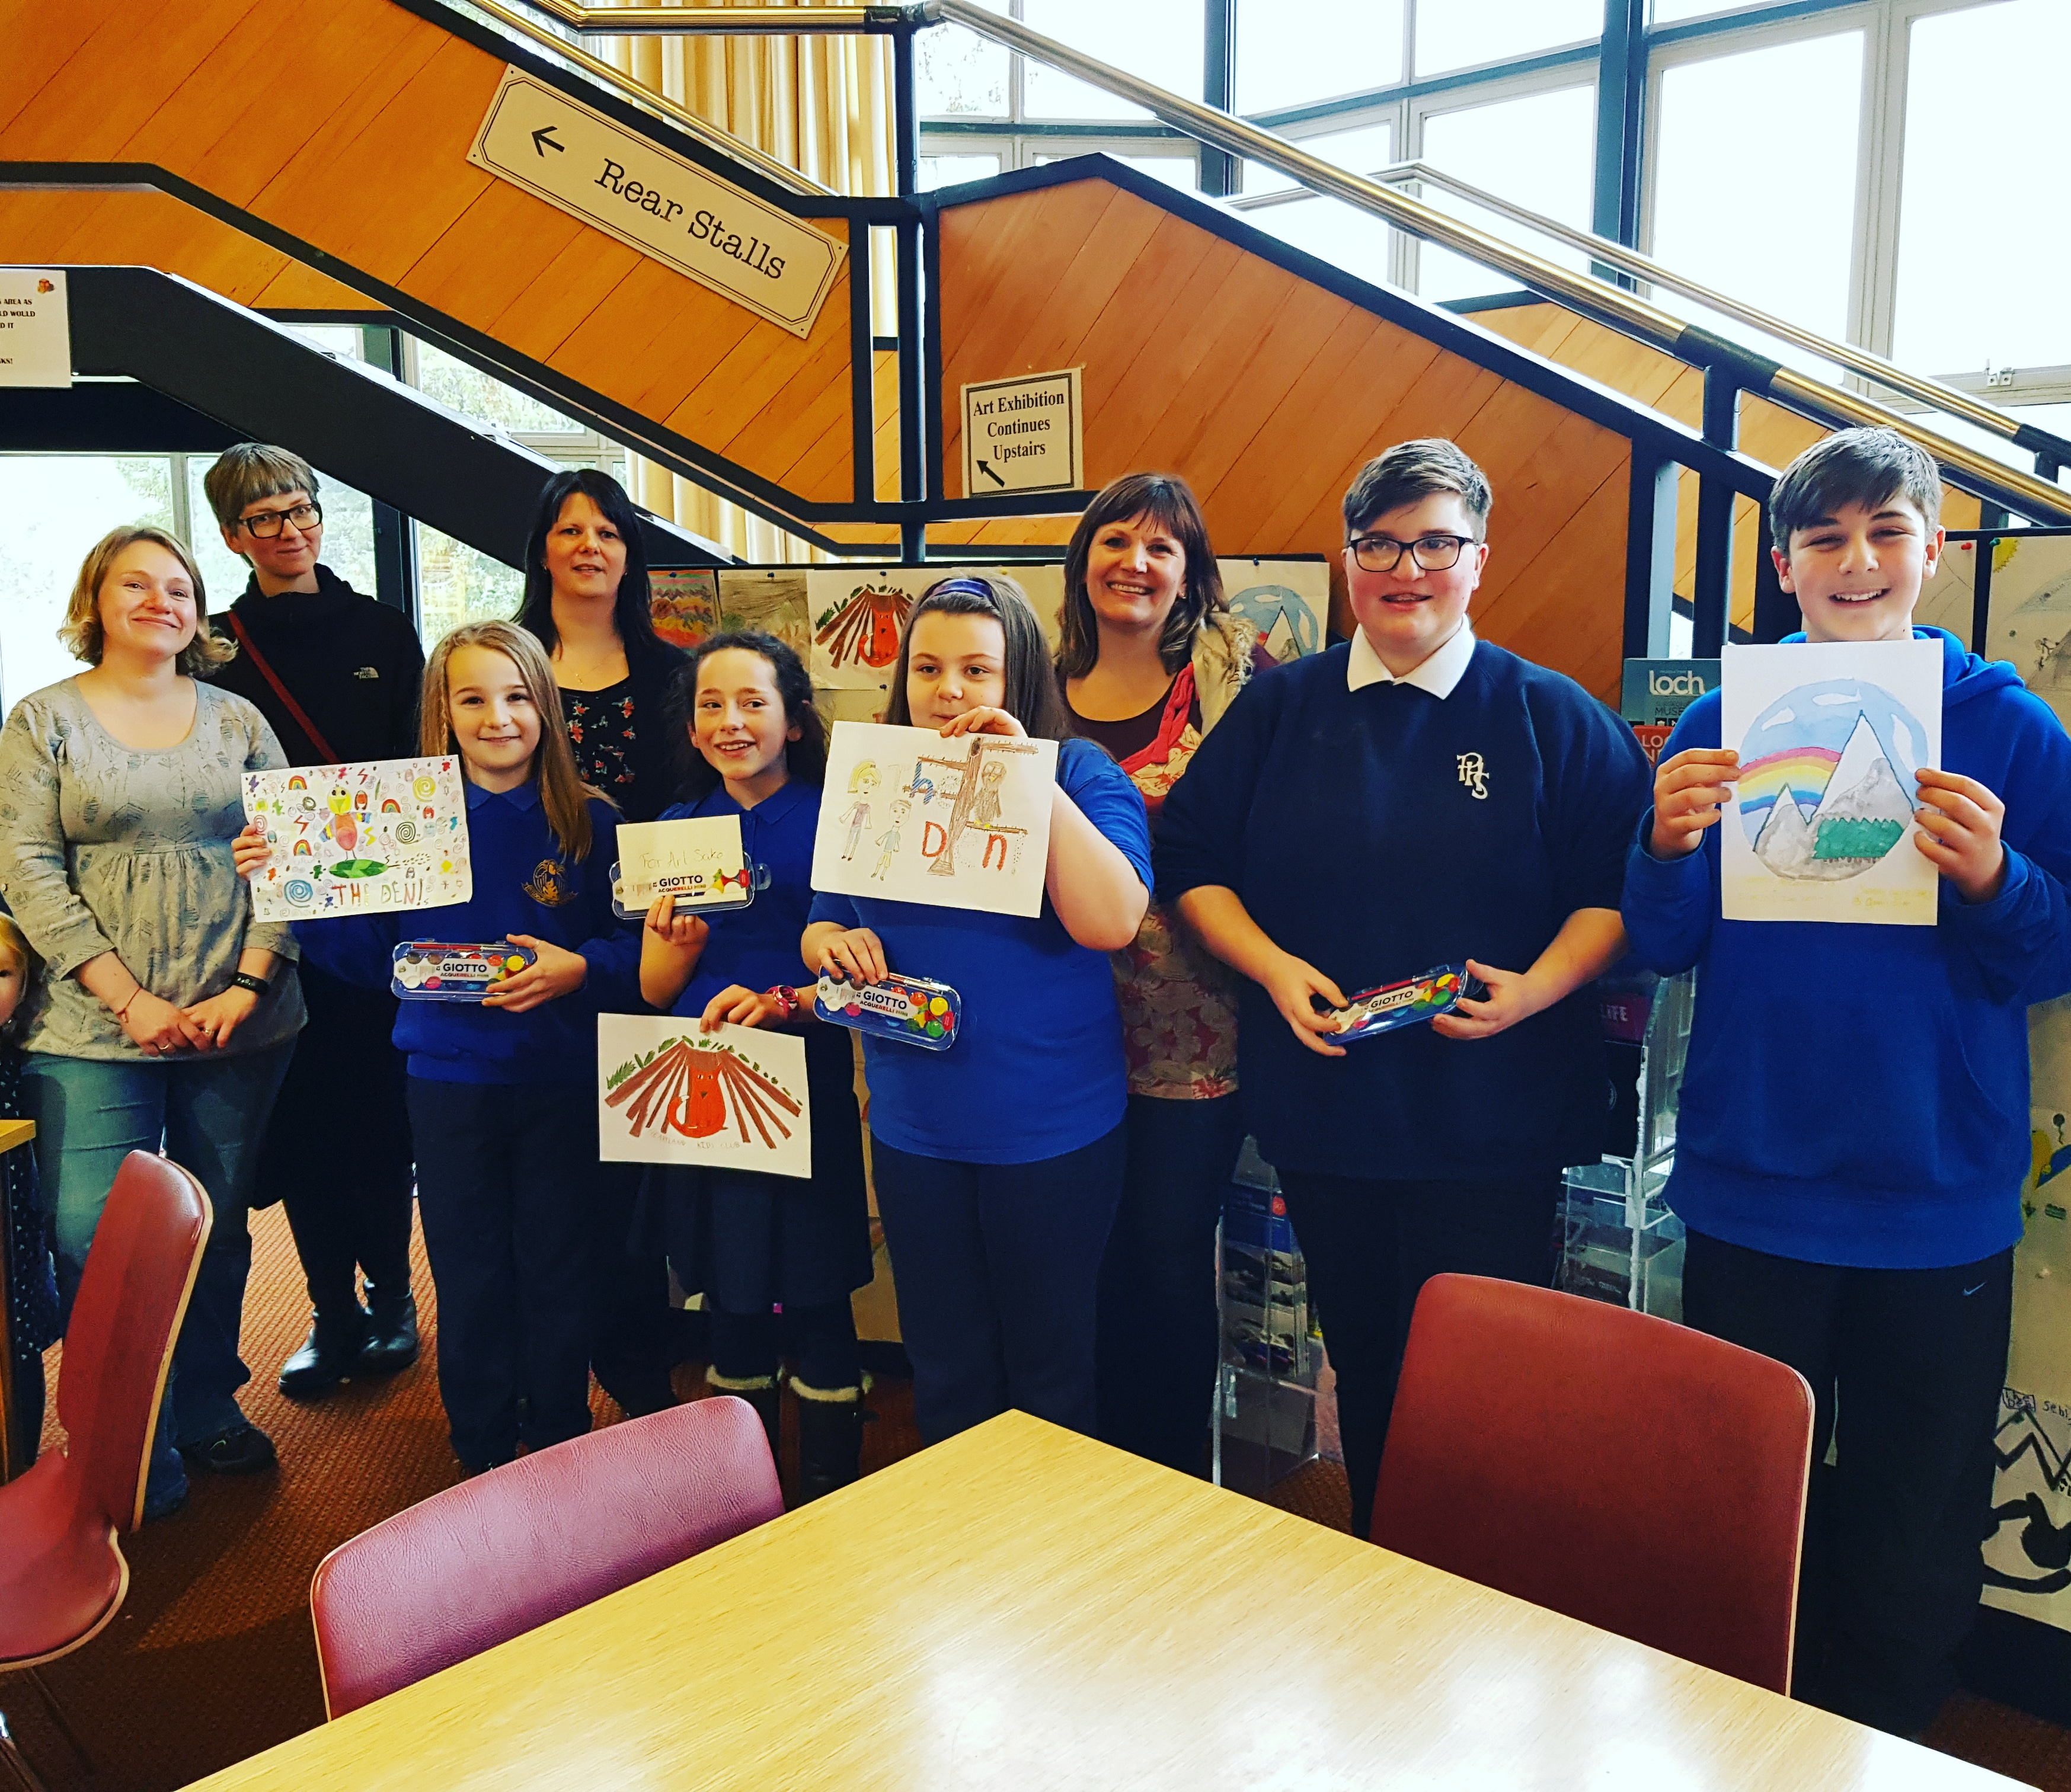 Logo design competition winner Sophia Gonzalez Campbell with runners up, Orla Cronin, Caitlin Robertson, Dimitris Zaczek and Chantelle McCauley at Pitlochry Festival Theatre